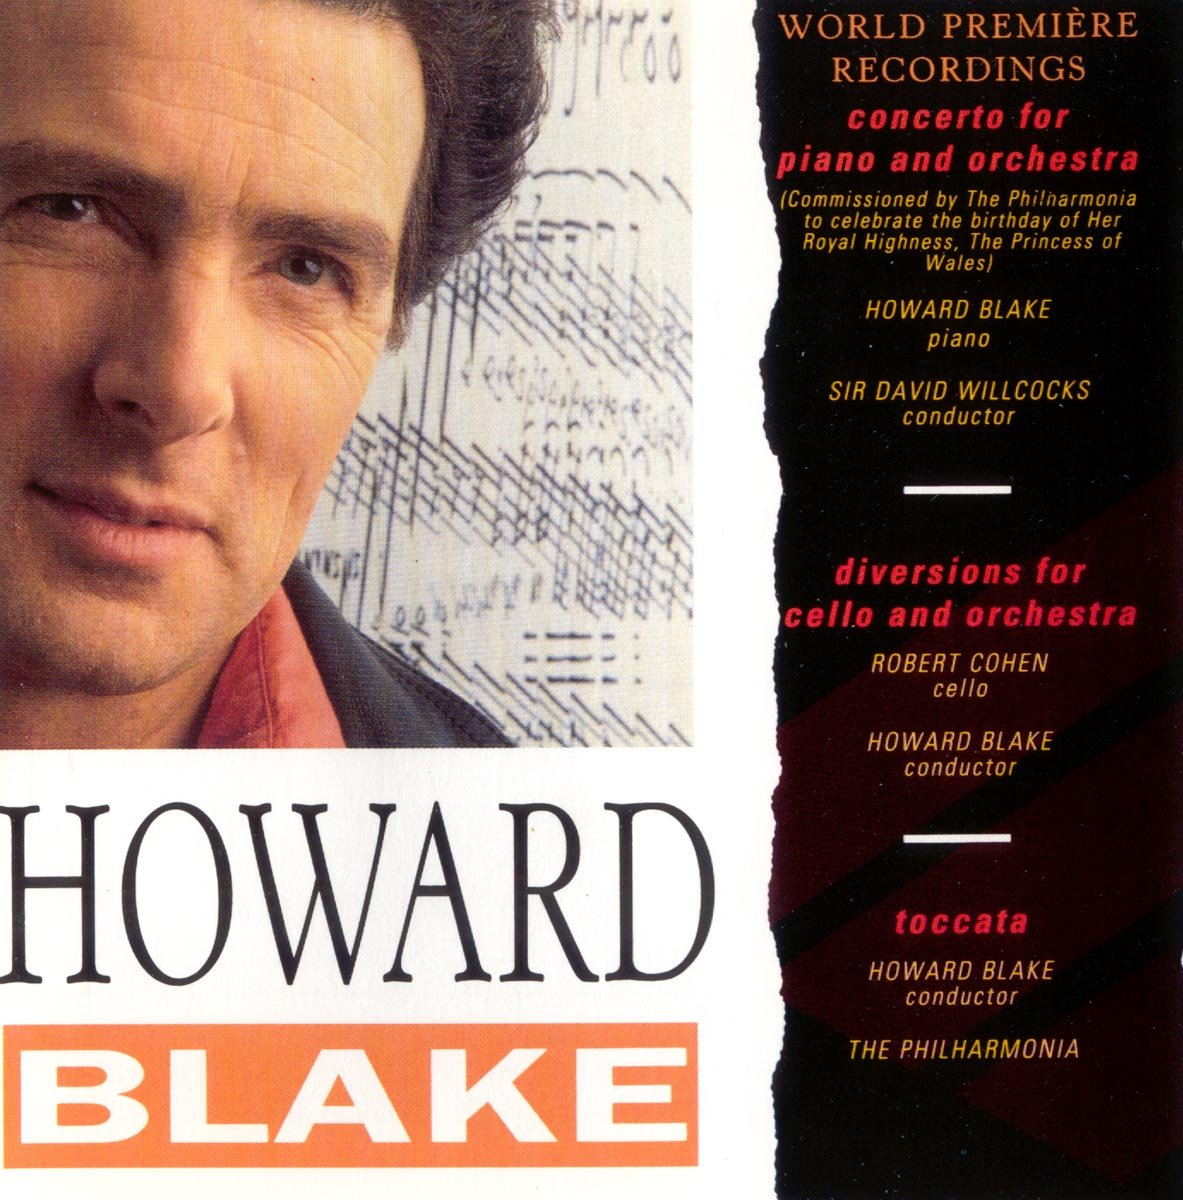 Howard Free shipping anywhere in the nation Blake. Denver Mall Concerto for Piano Orchestra; cel Diversions